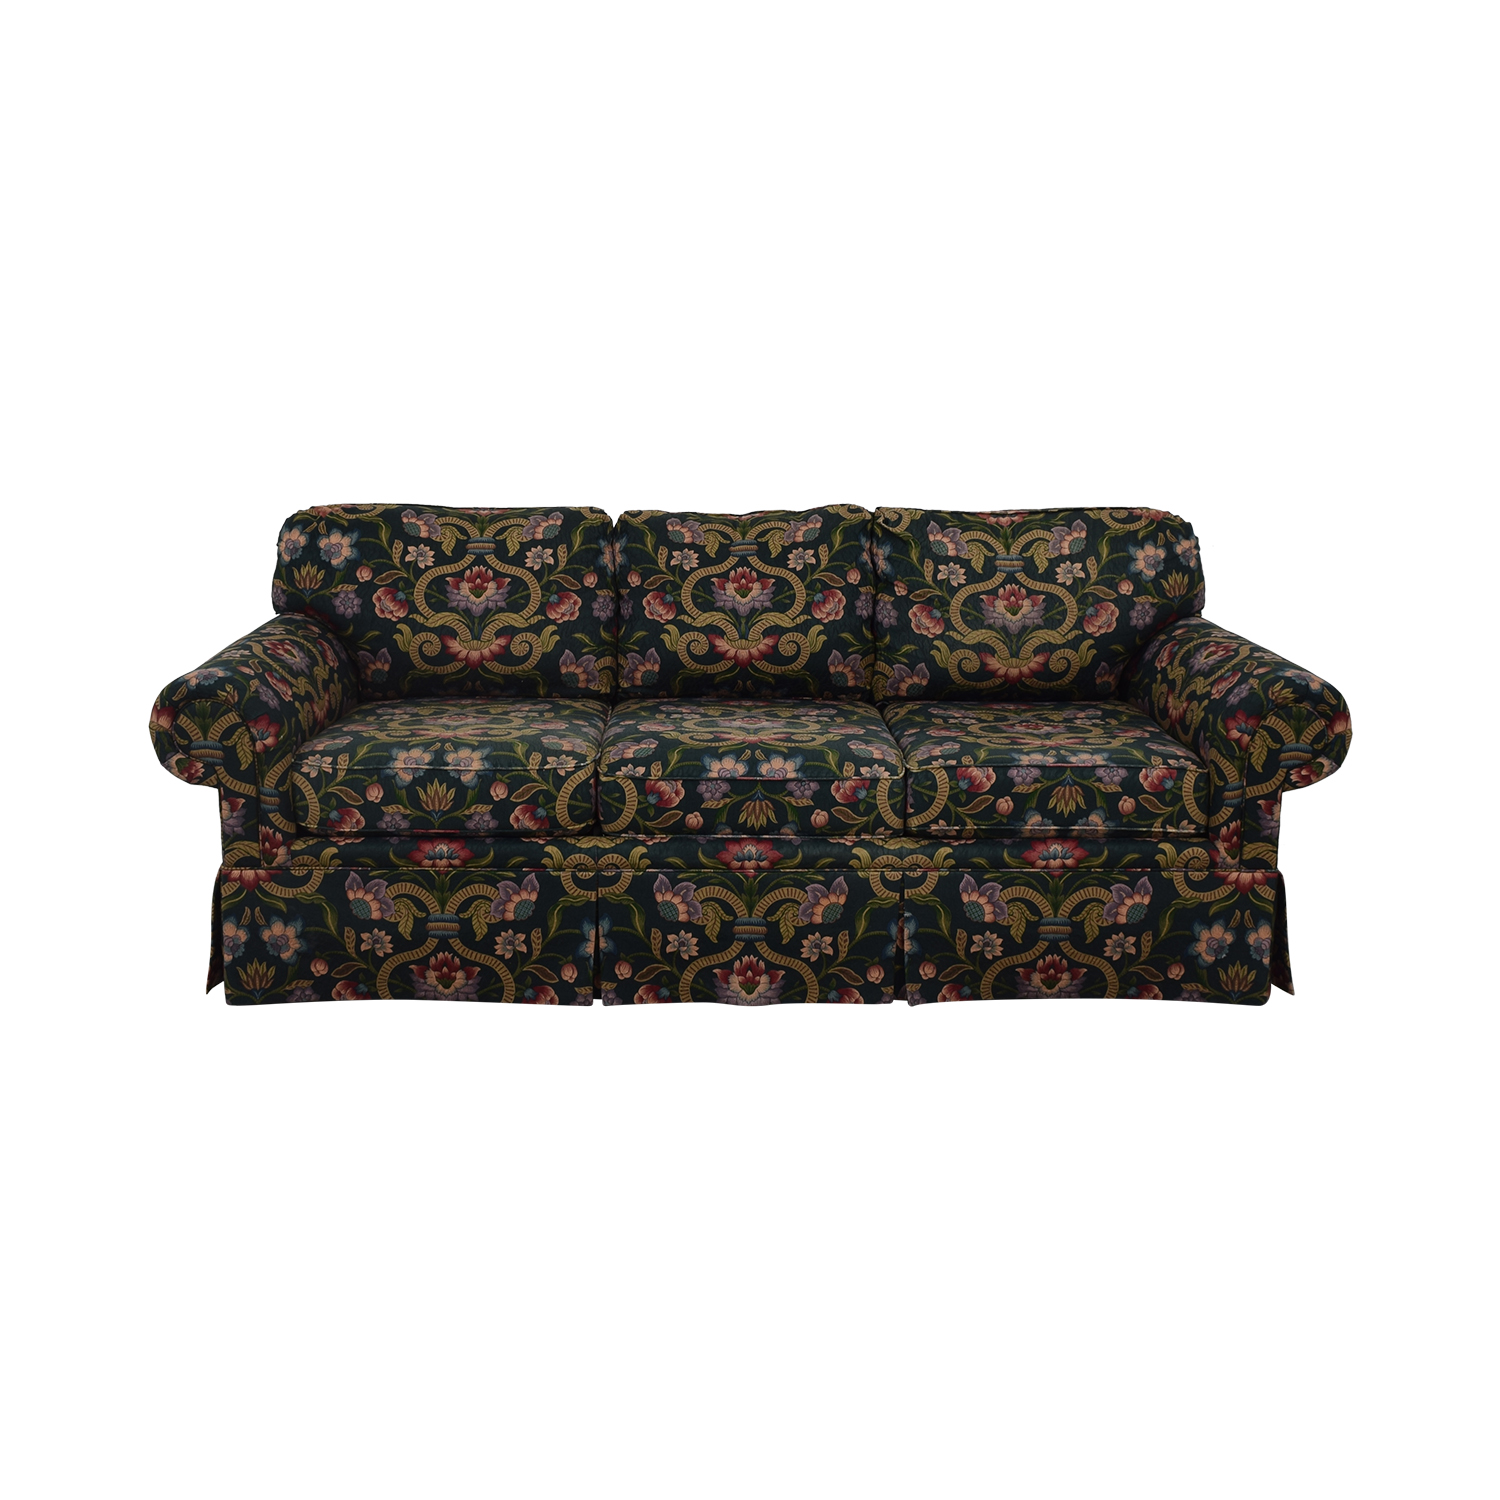 Vanguard Furniture Vanguard Furniture Floral Print Rolled Arm Sofa pa